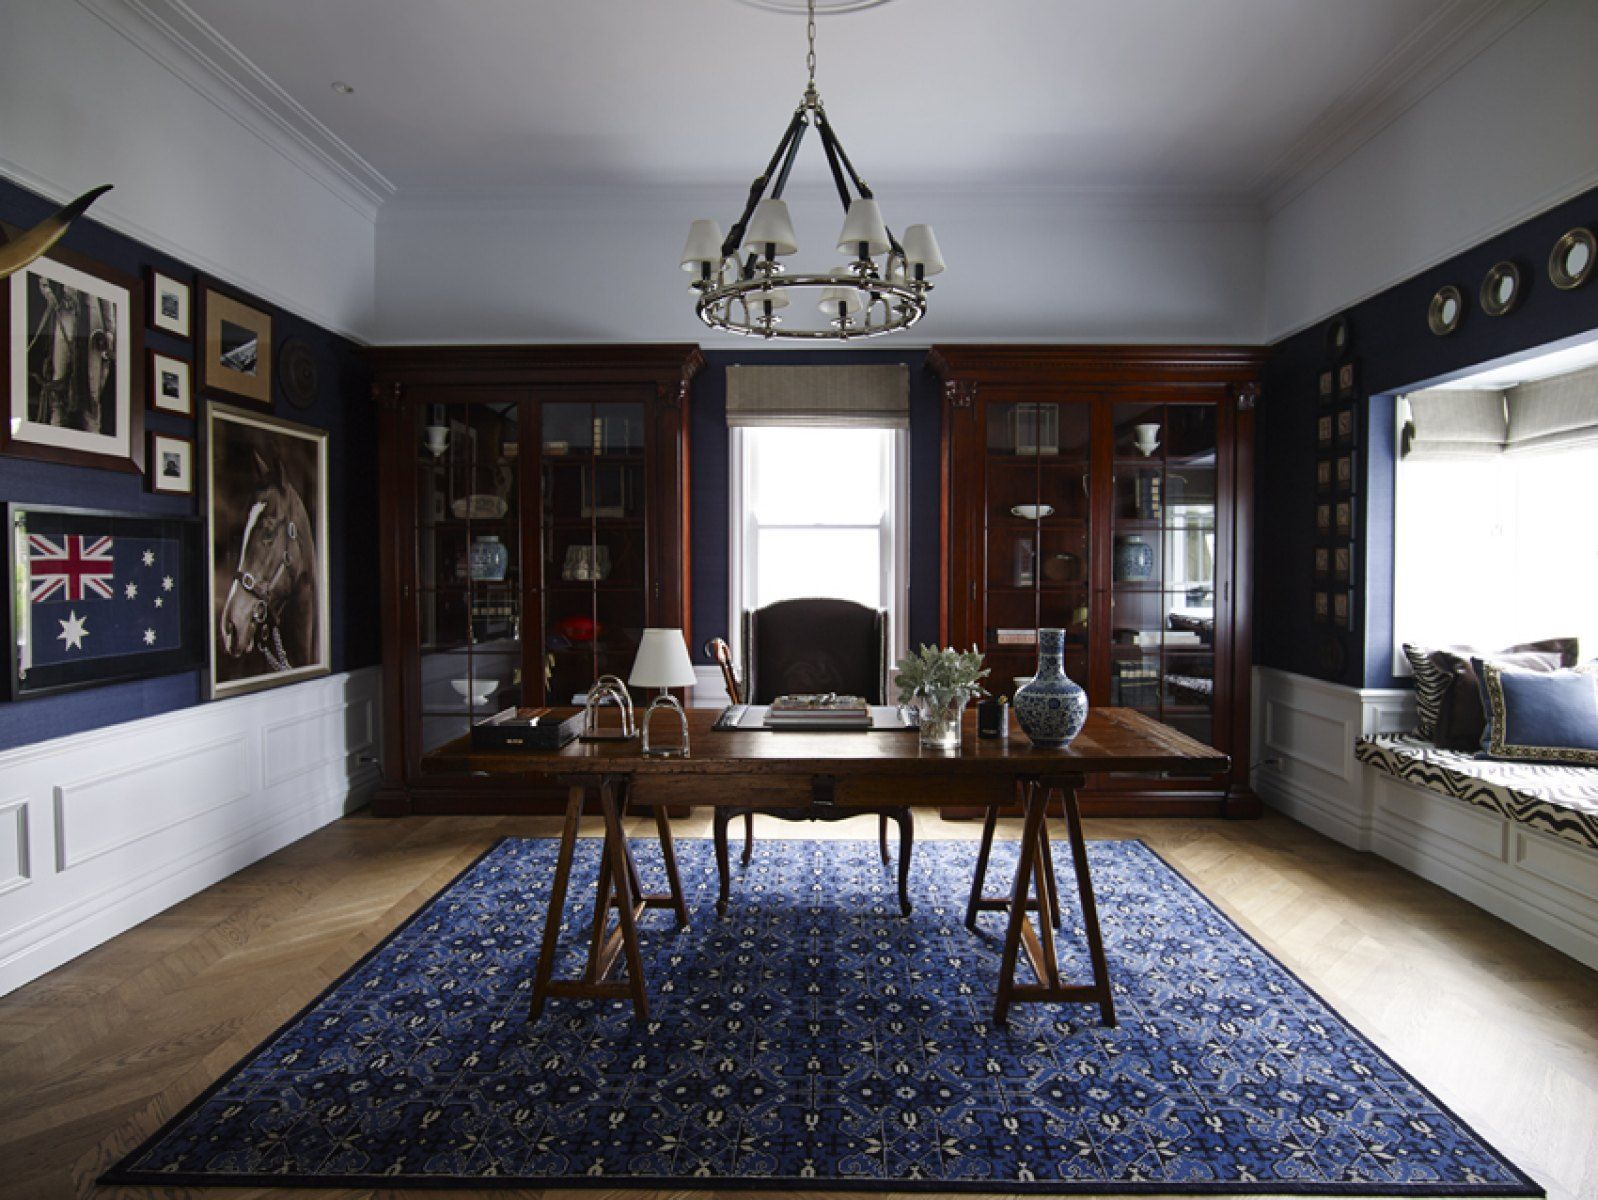 Living room dark navy Ralph Lauren inspired dark stained wood